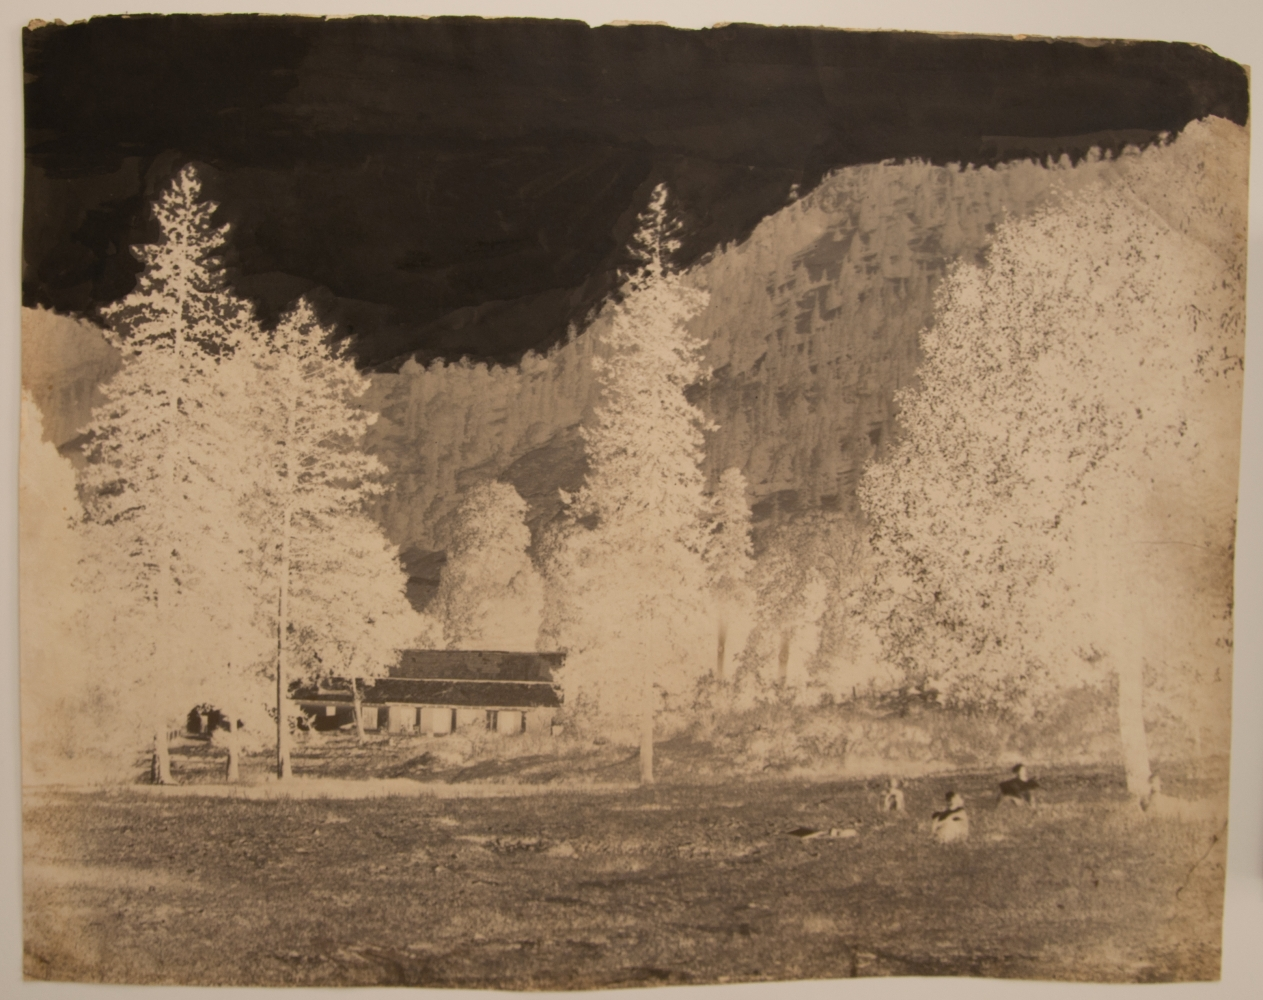 Dr. John MURRAY (Scottish, 1809-1898) Nainital, view of house in forest, circa 1858-1862 Calotype negative, waxed 36.8 x 47.1 cm, irregularly trimmed